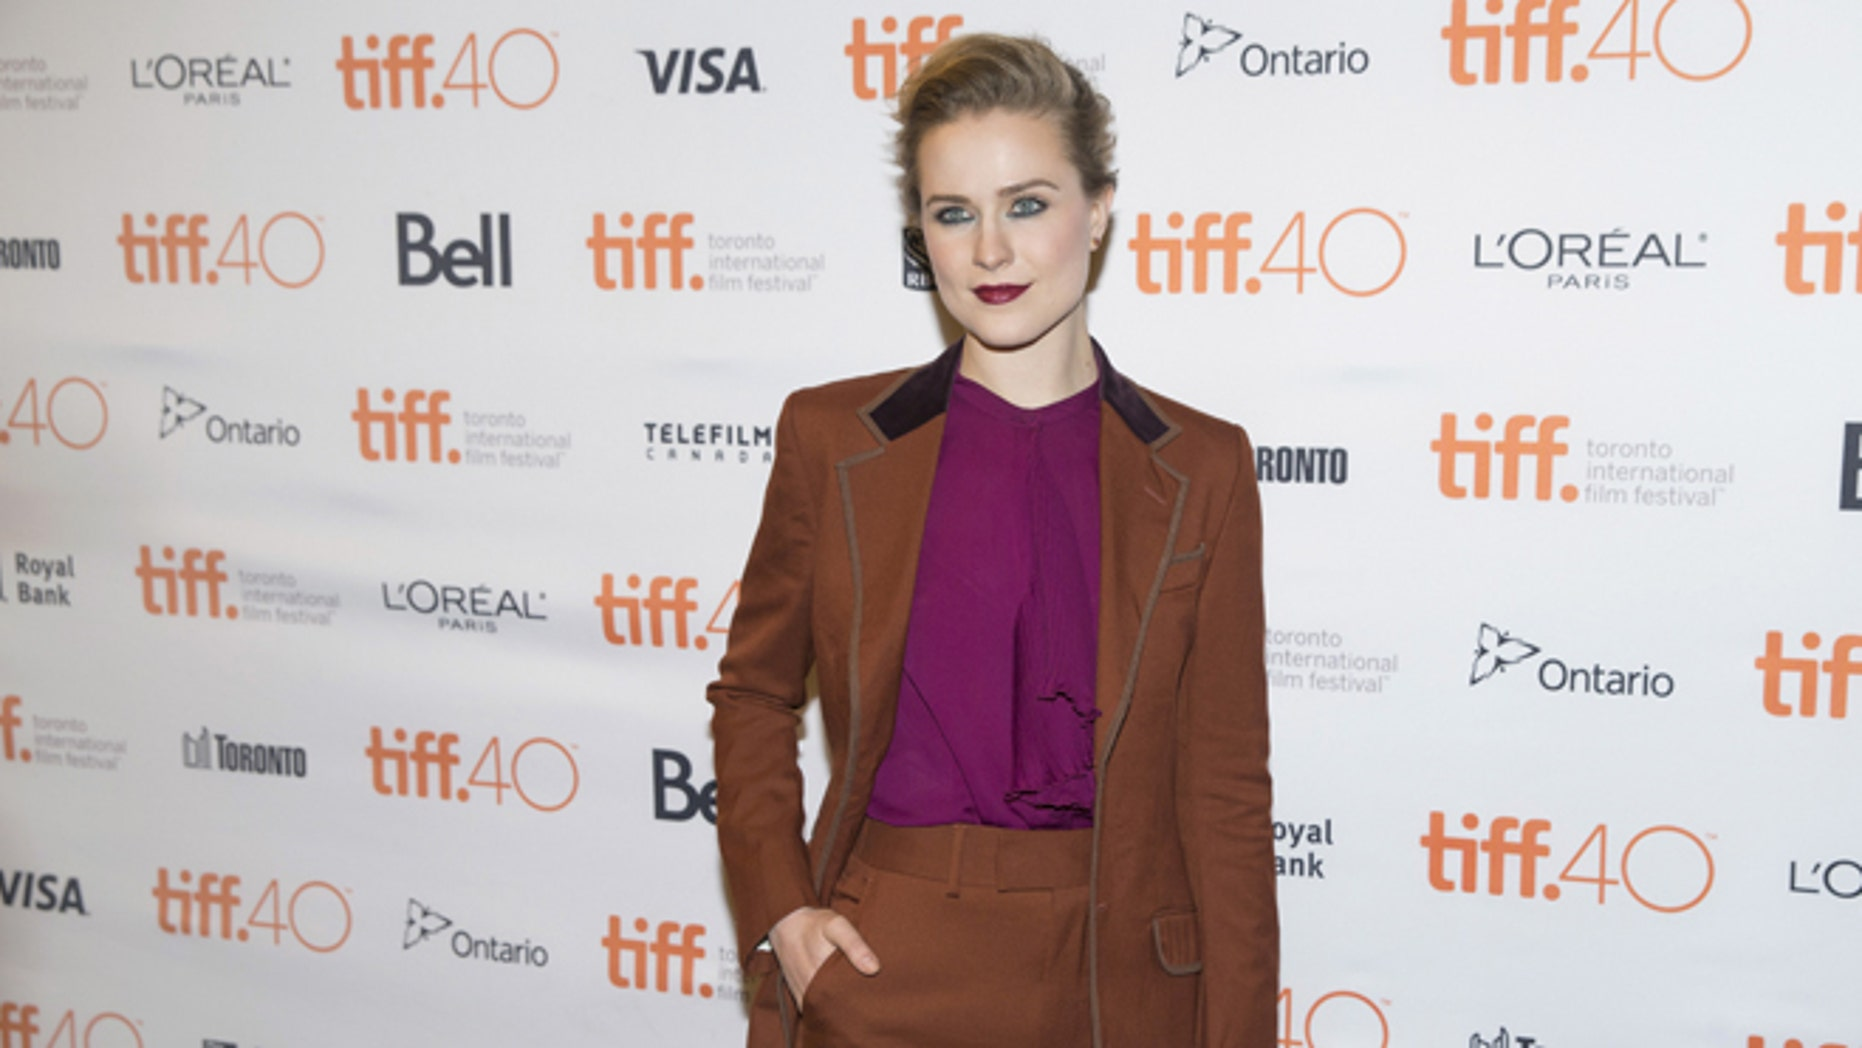 """September 12, 2015. Evan Rachel Wood arrives on the red carpet for the film """"Into the Forest"""" during the 40th Toronto International Film Festival in Toronto, Canada."""